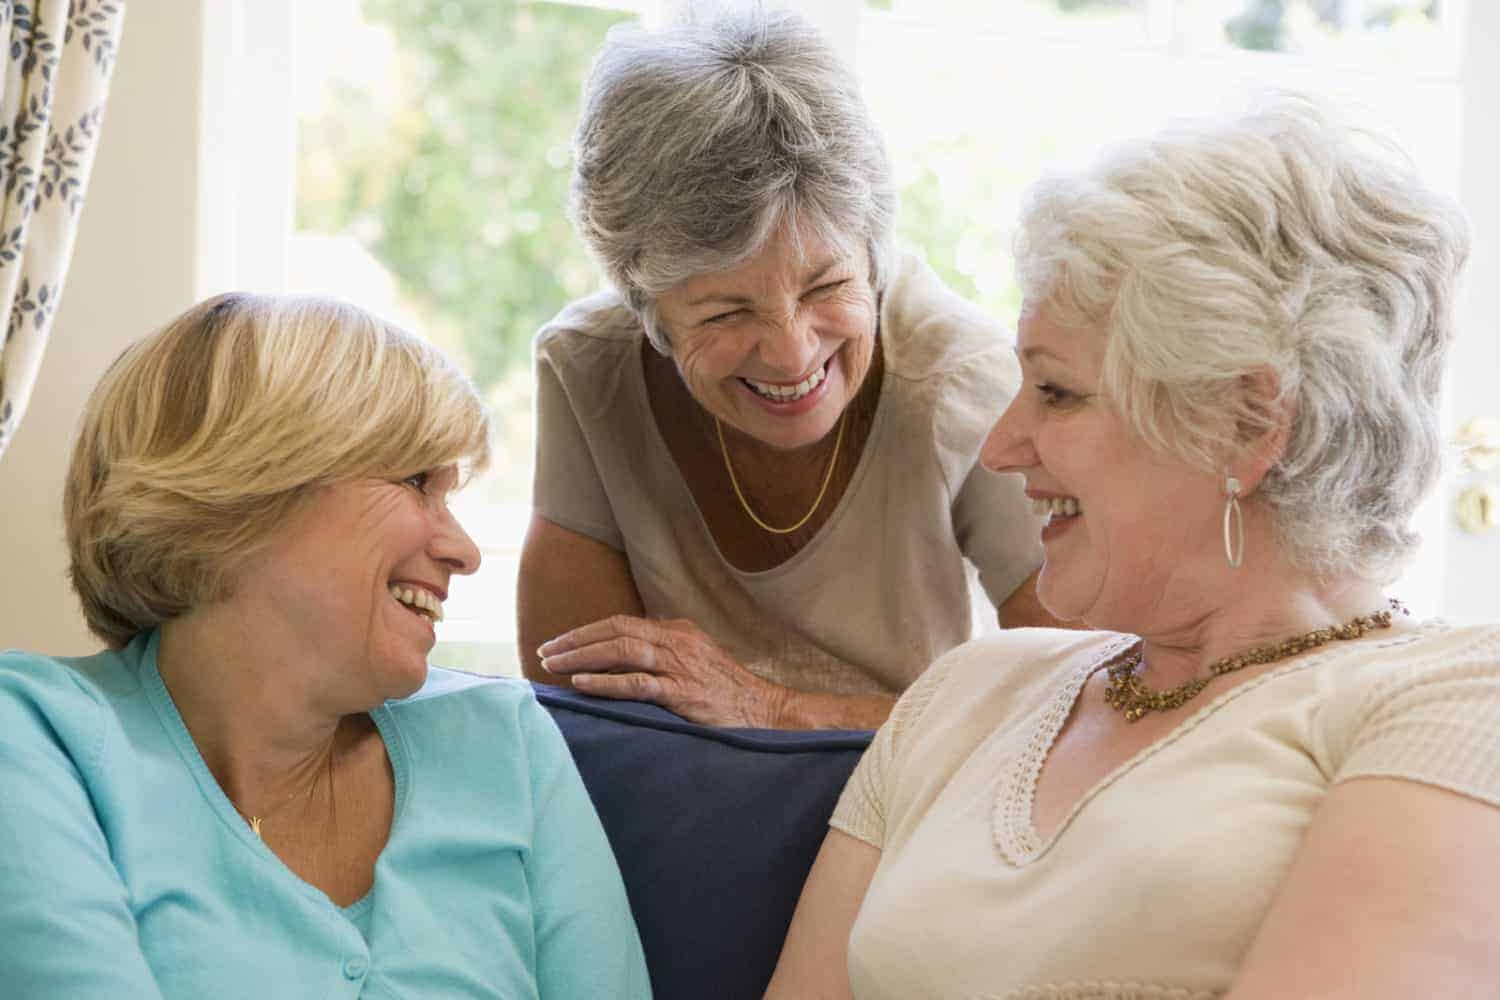 Three women are talking with each other happily